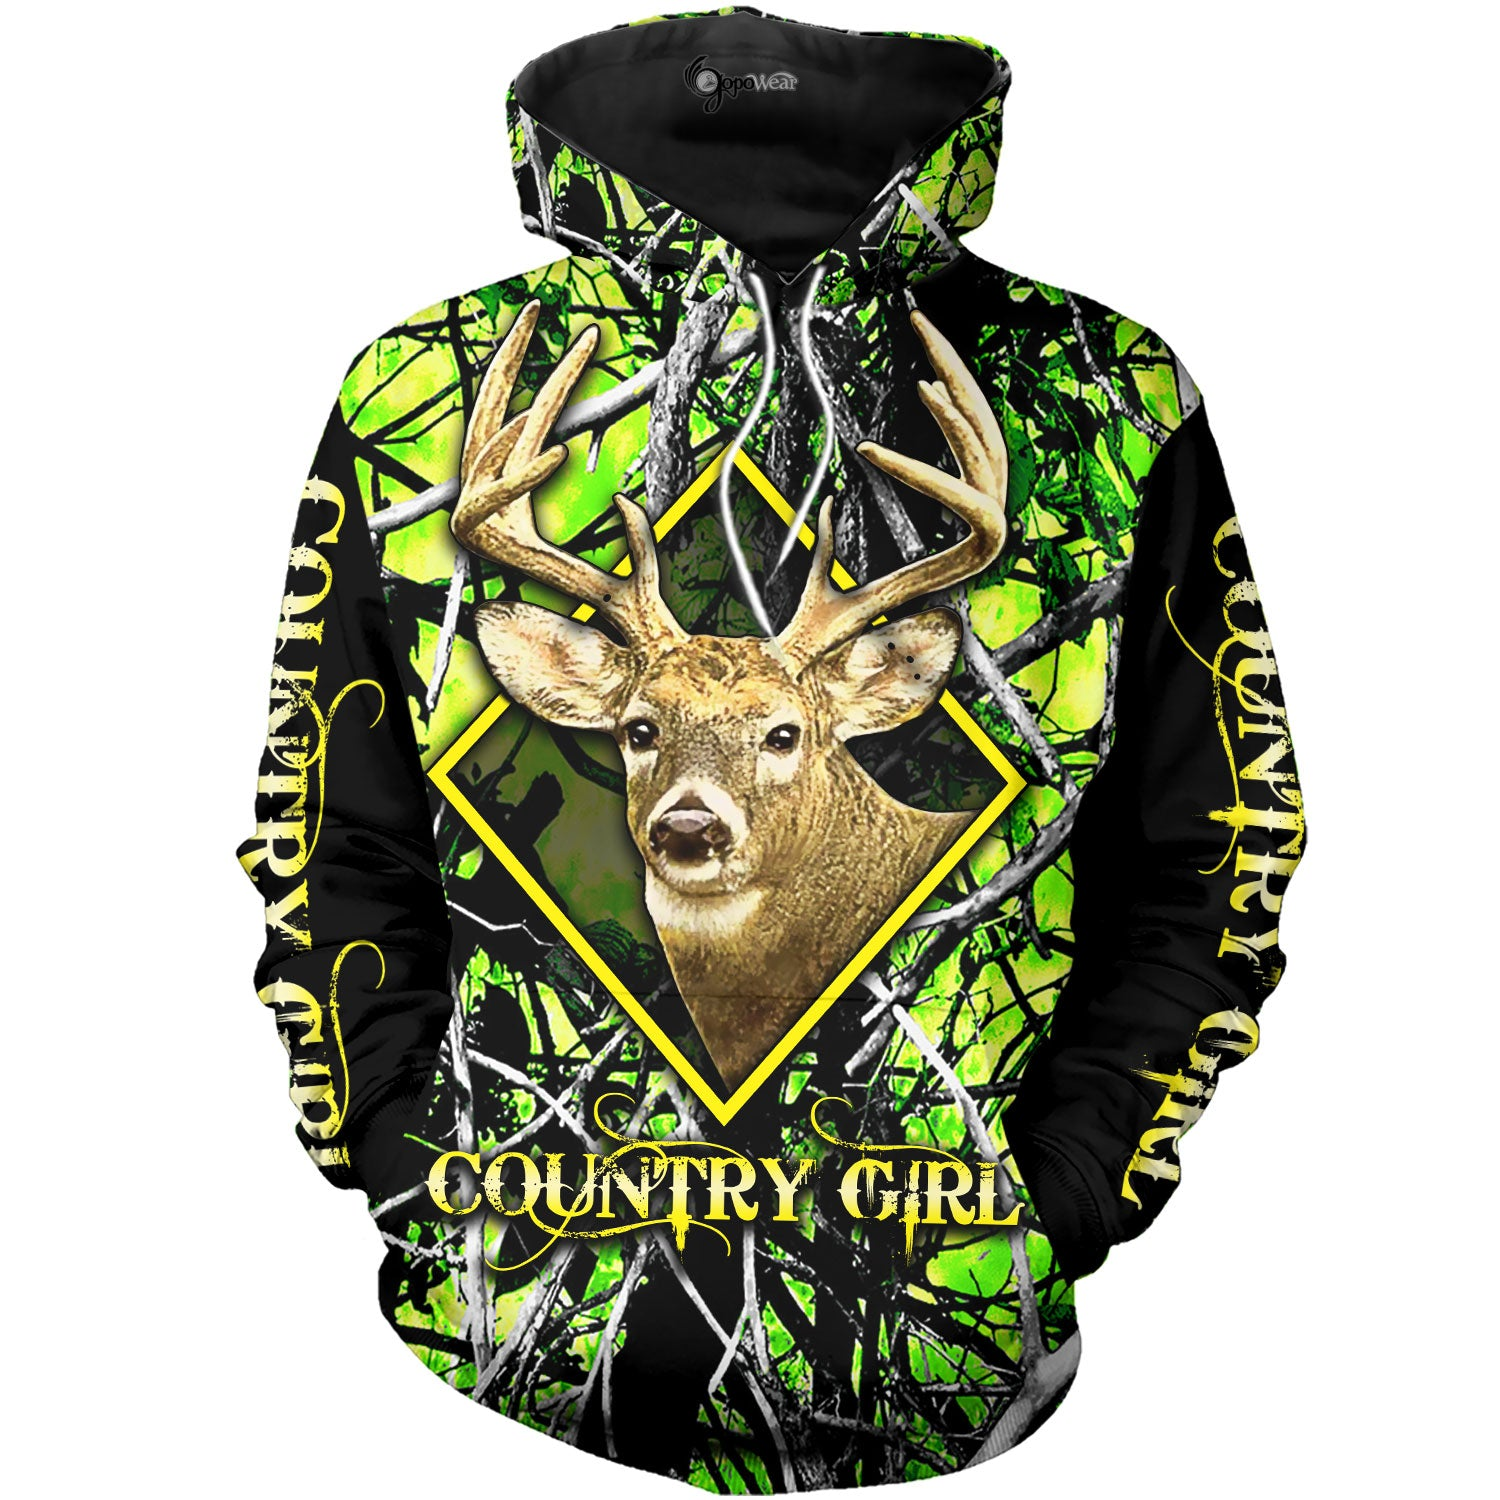 Green Camo Country Girl 3D All Over Printed Shirts For Men & Women